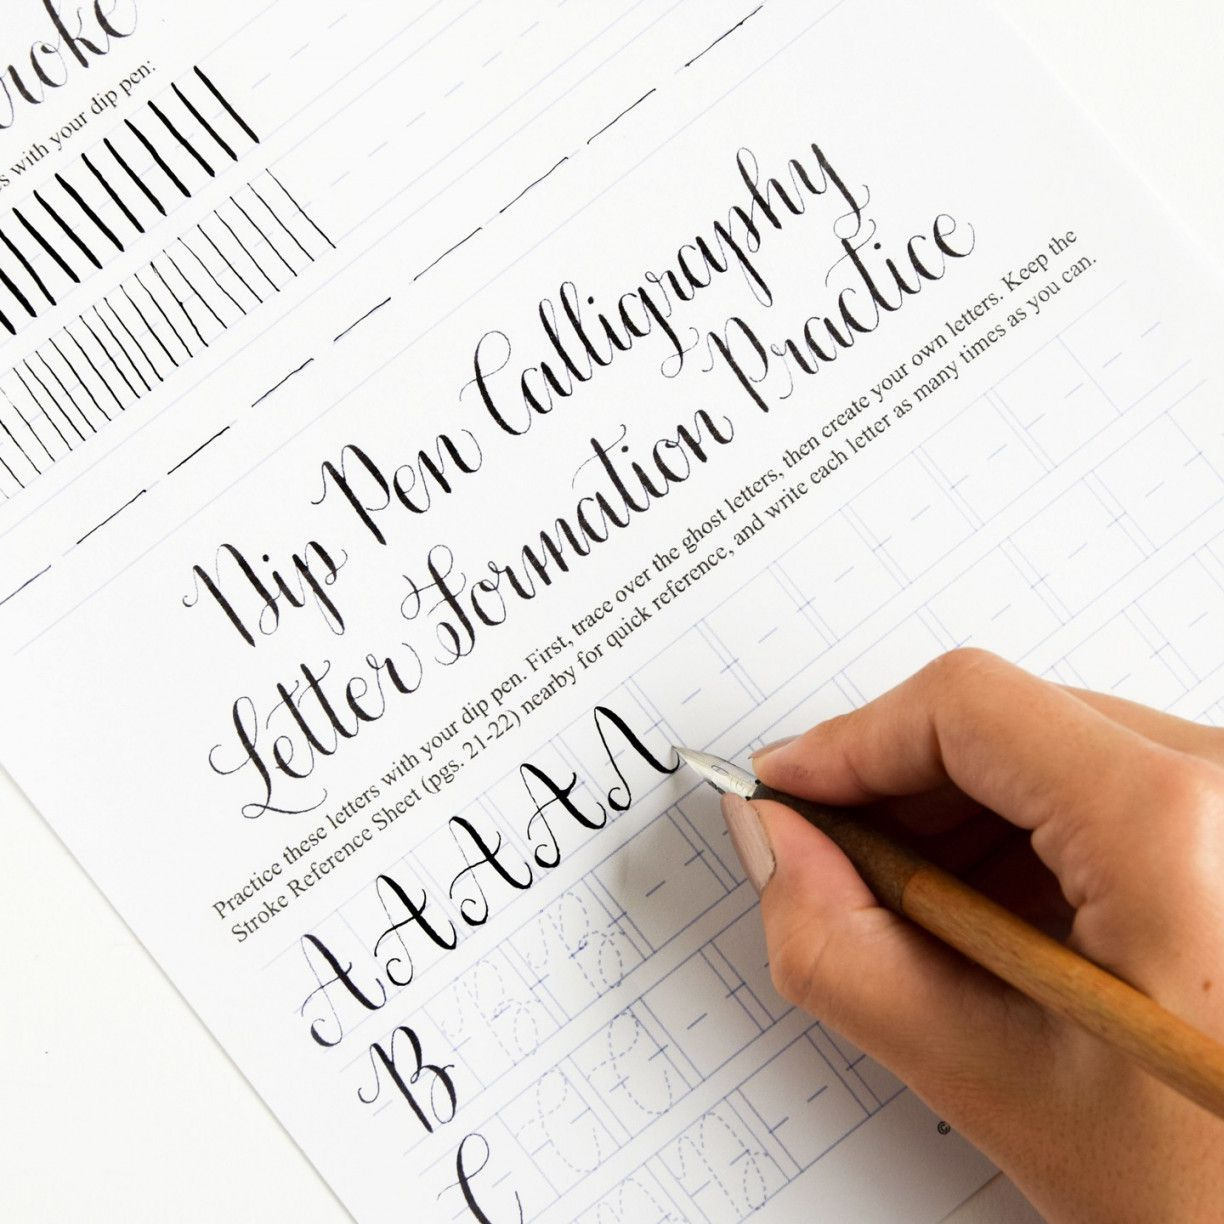 Free Calligraphy Worksheets | Lostranquillos - Free Printable Calligraphy Worksheets